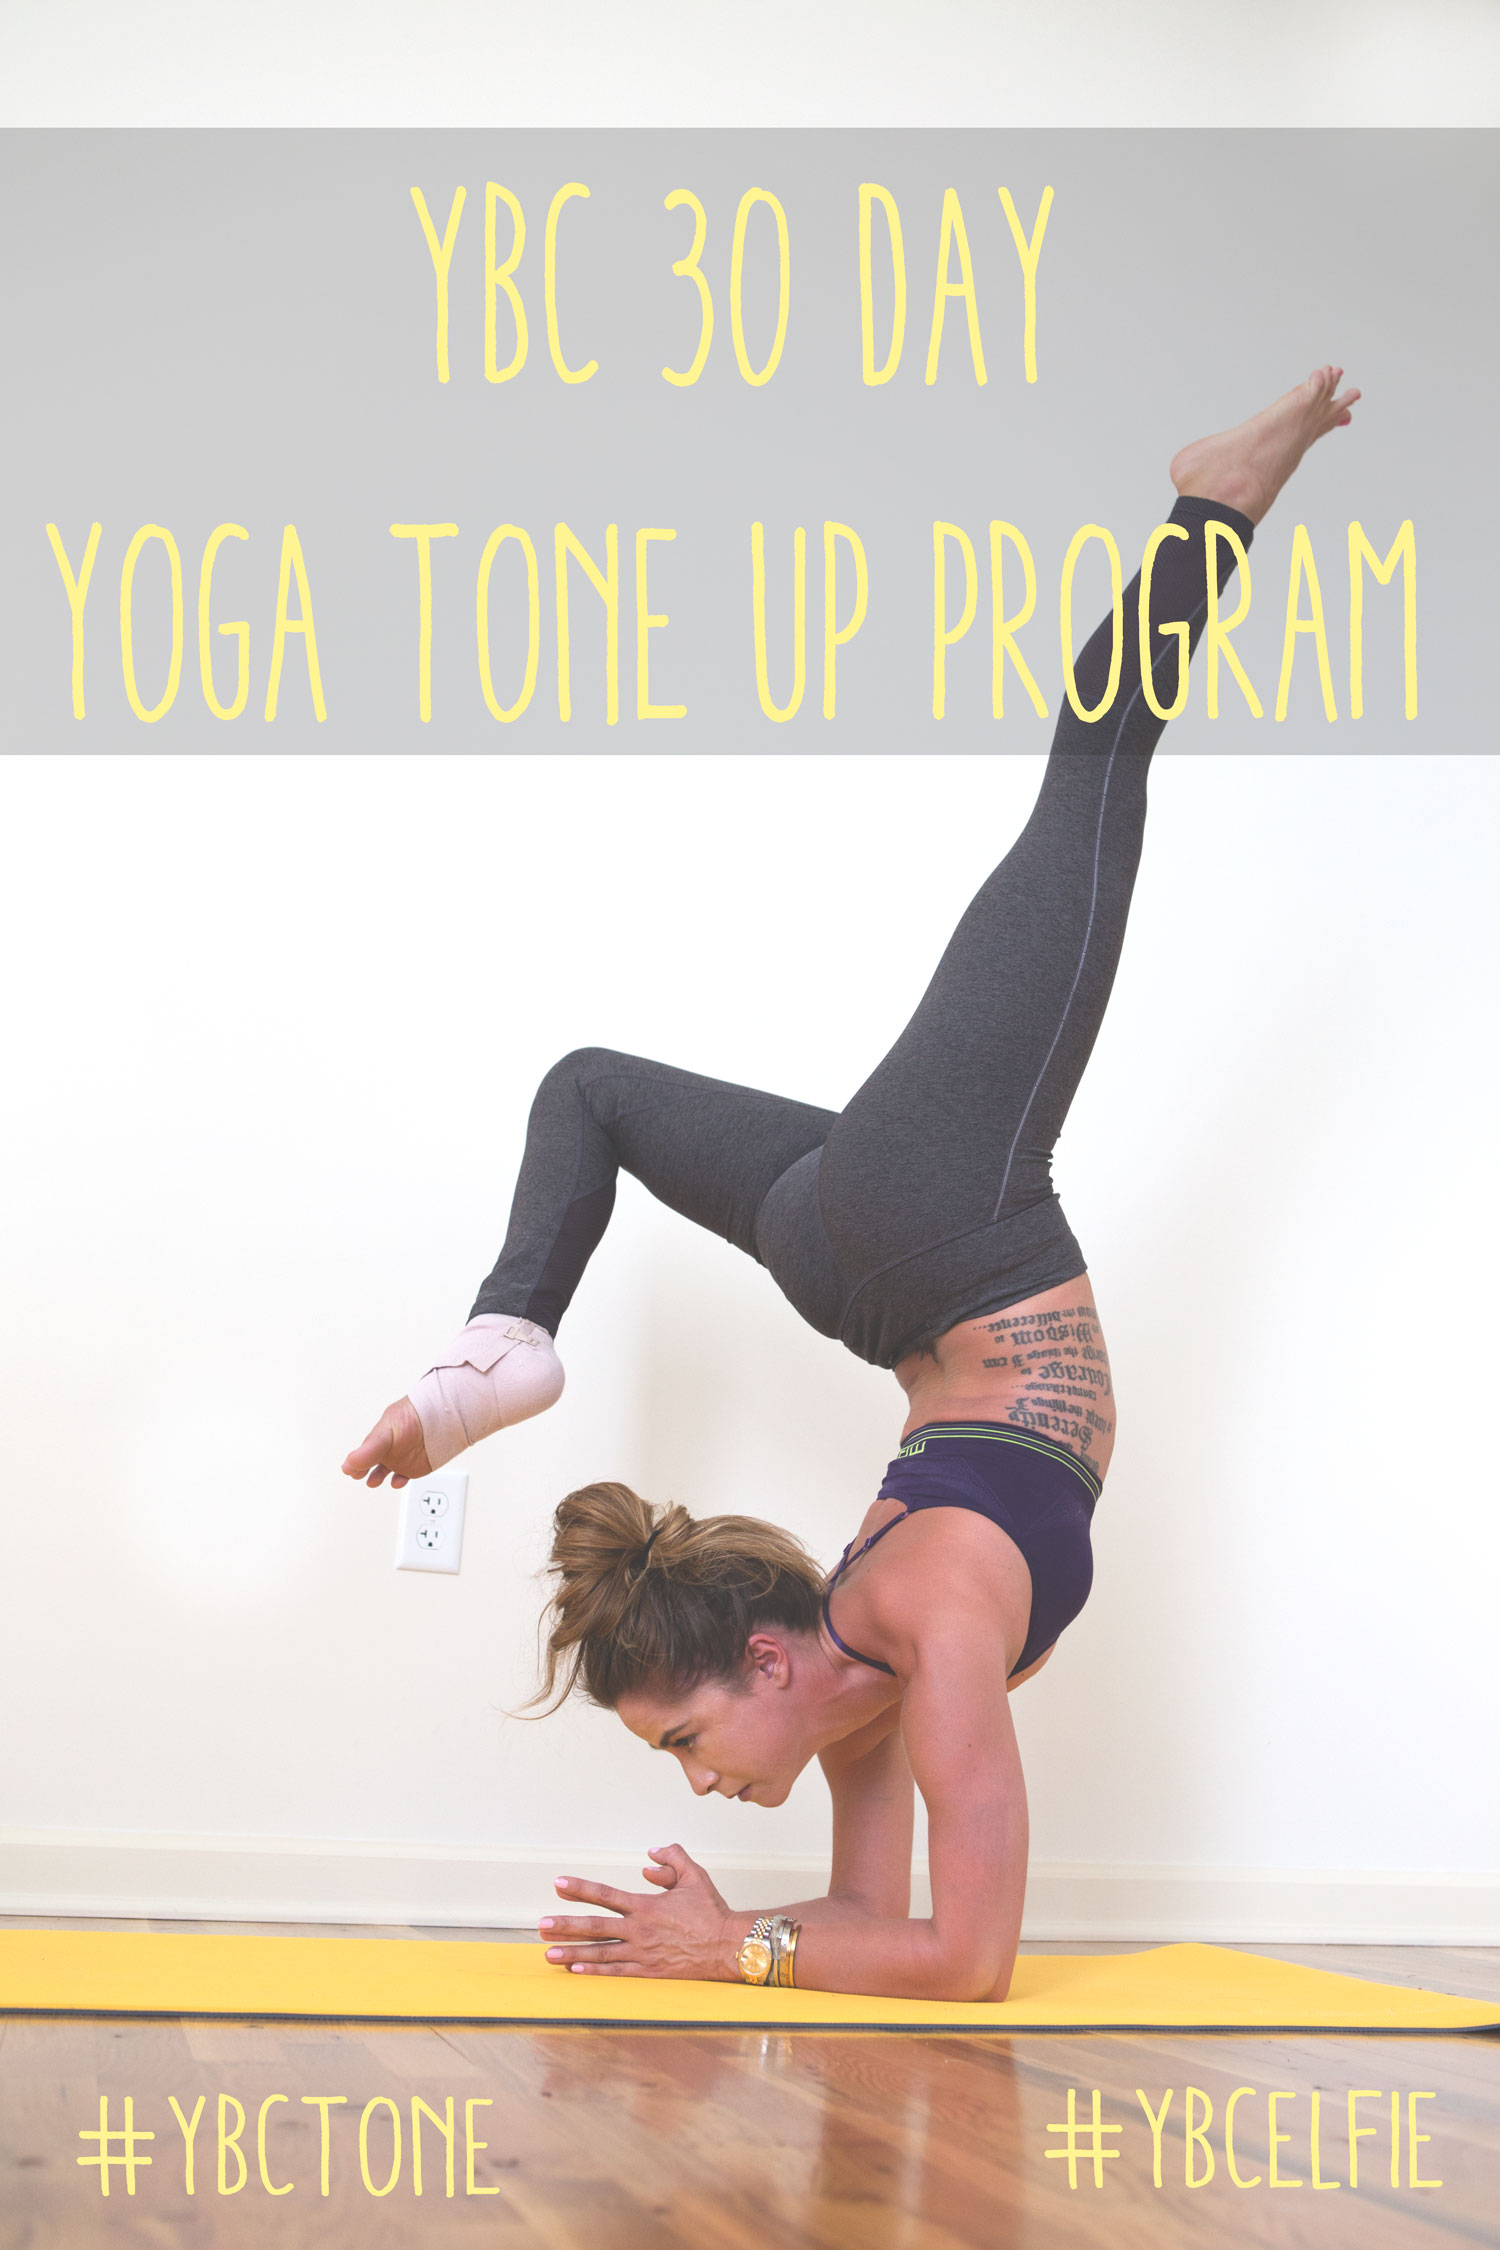 Pin now and join in on our 30 day tone up program through yoga!  Wearing: MPG leggings ( similar ) and bra c/o. Using  lole mat .